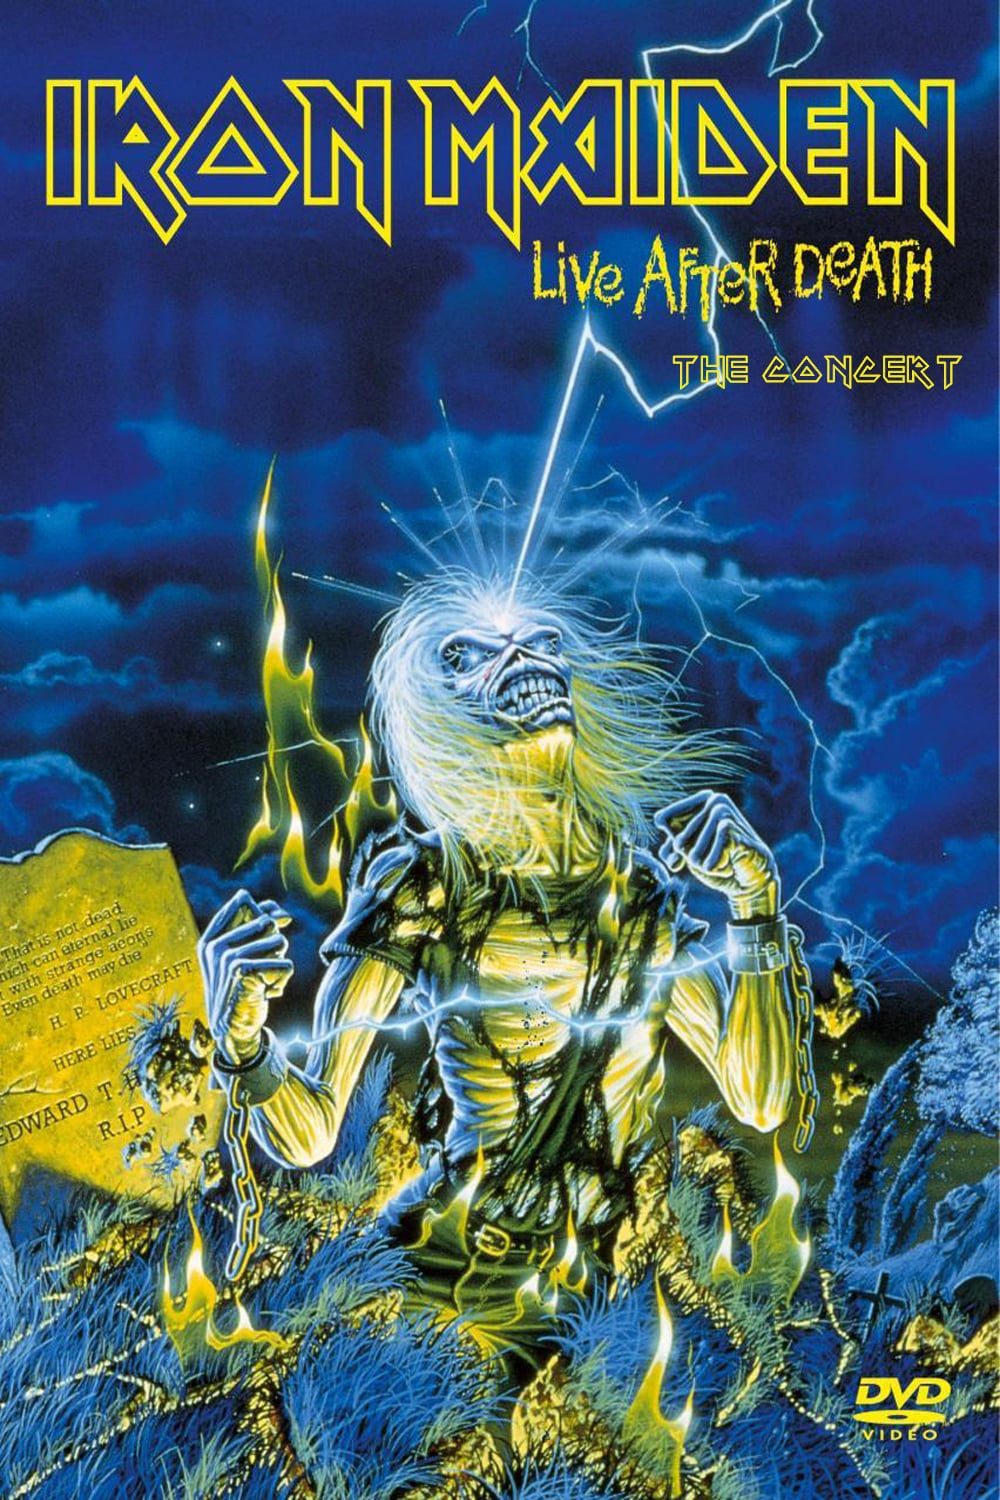 """Poster for the movie """"Iron Maiden: Live After Death"""""""